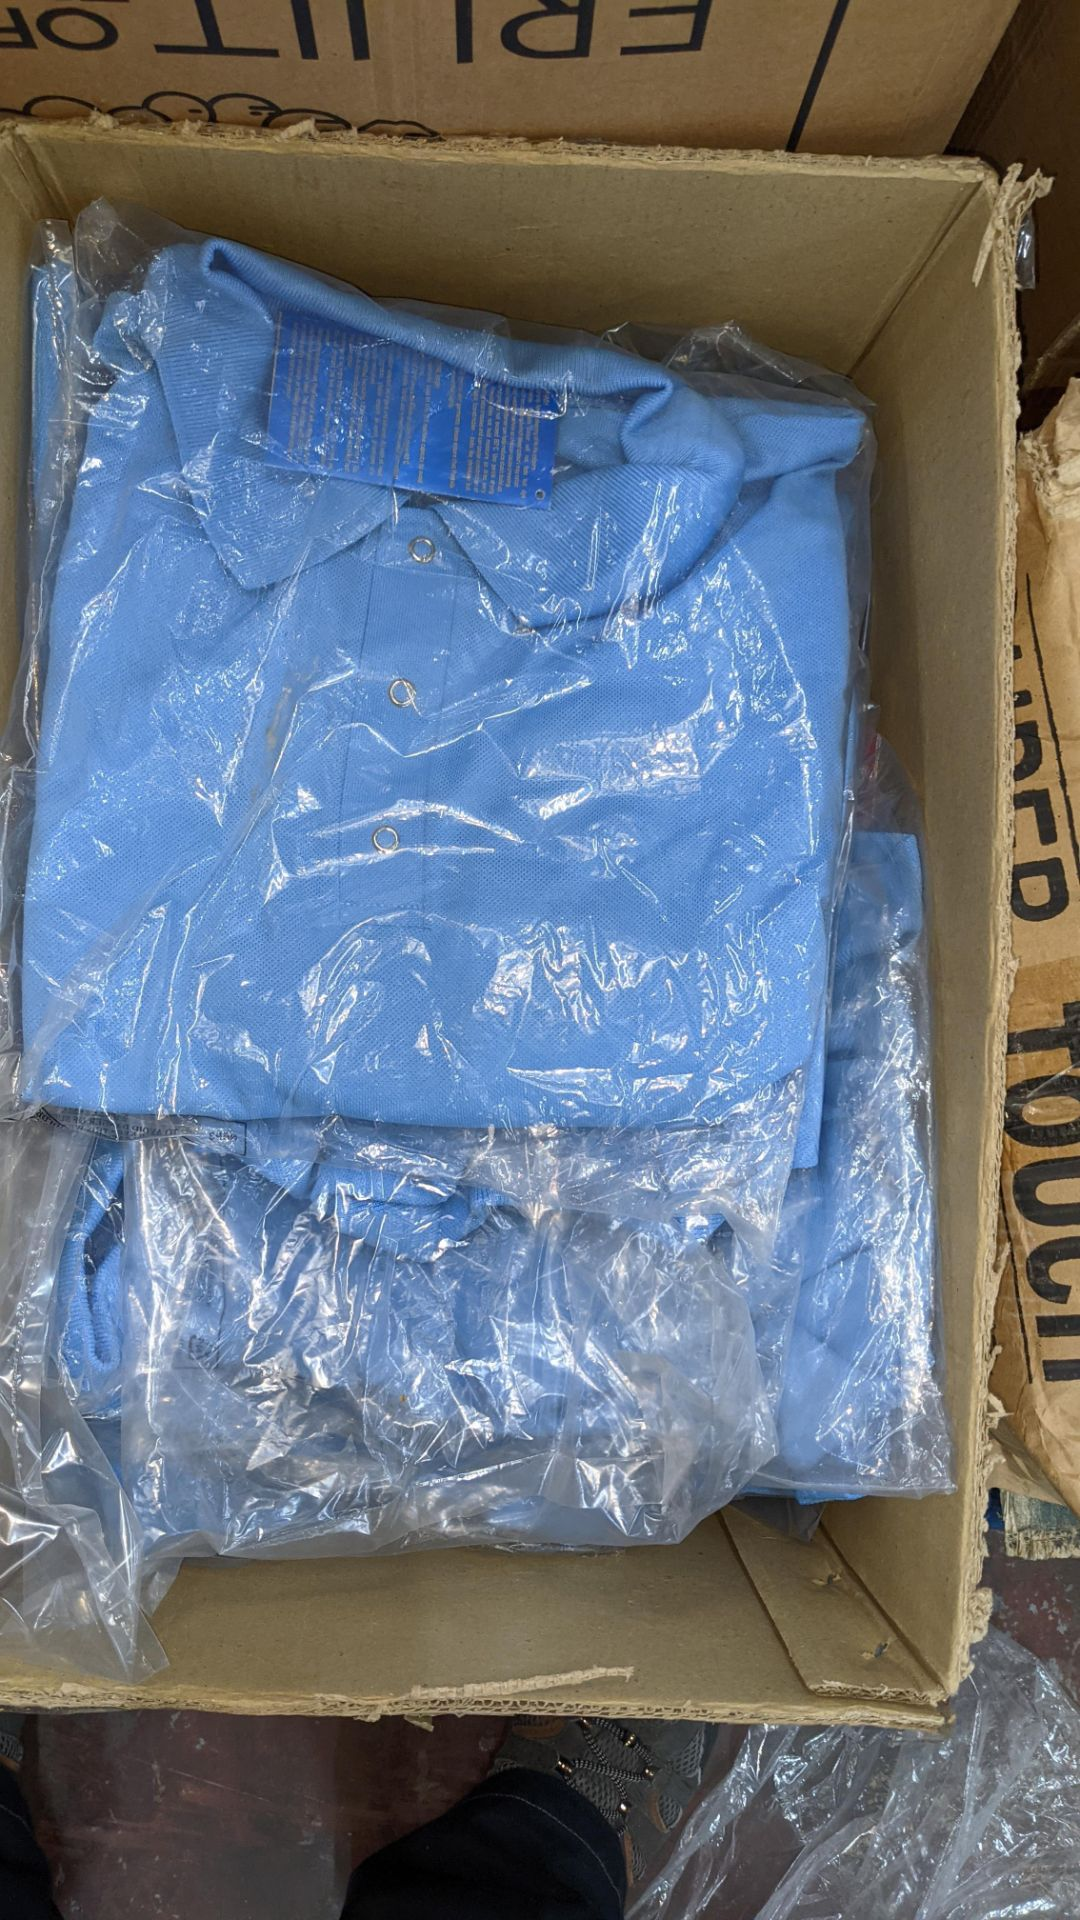 Approx 10 off pale blue polo shirts - 1 box - Image 3 of 5